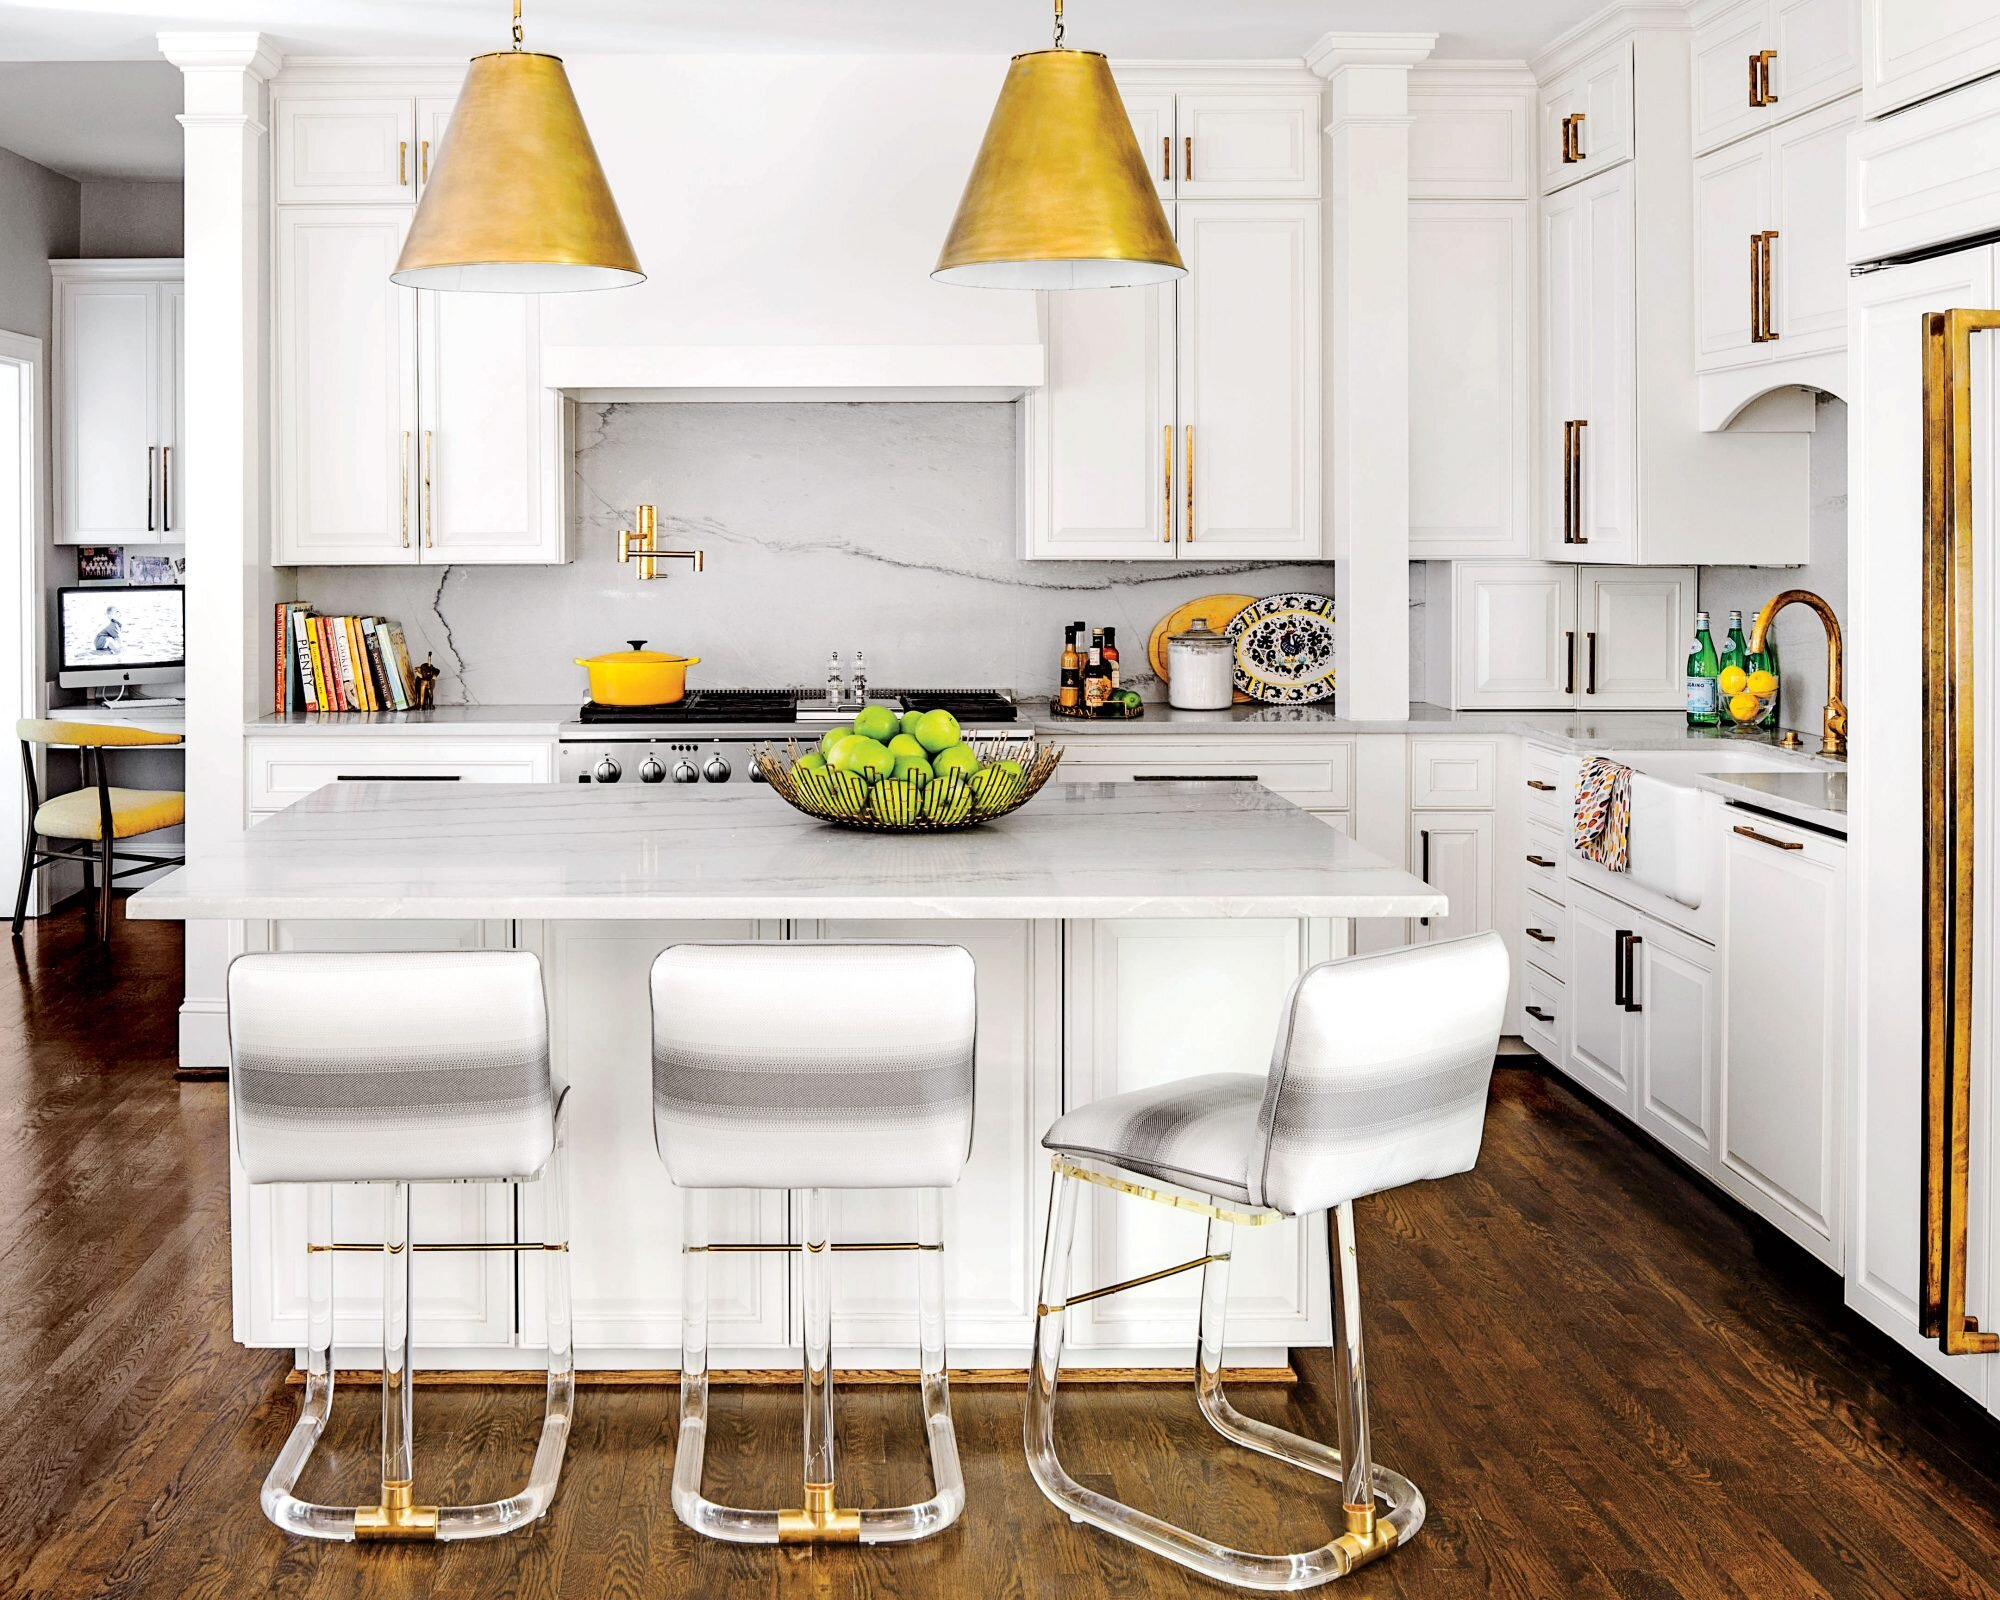 10 Classic Backsplash Options That Aren T White Subway Tile Southern Living